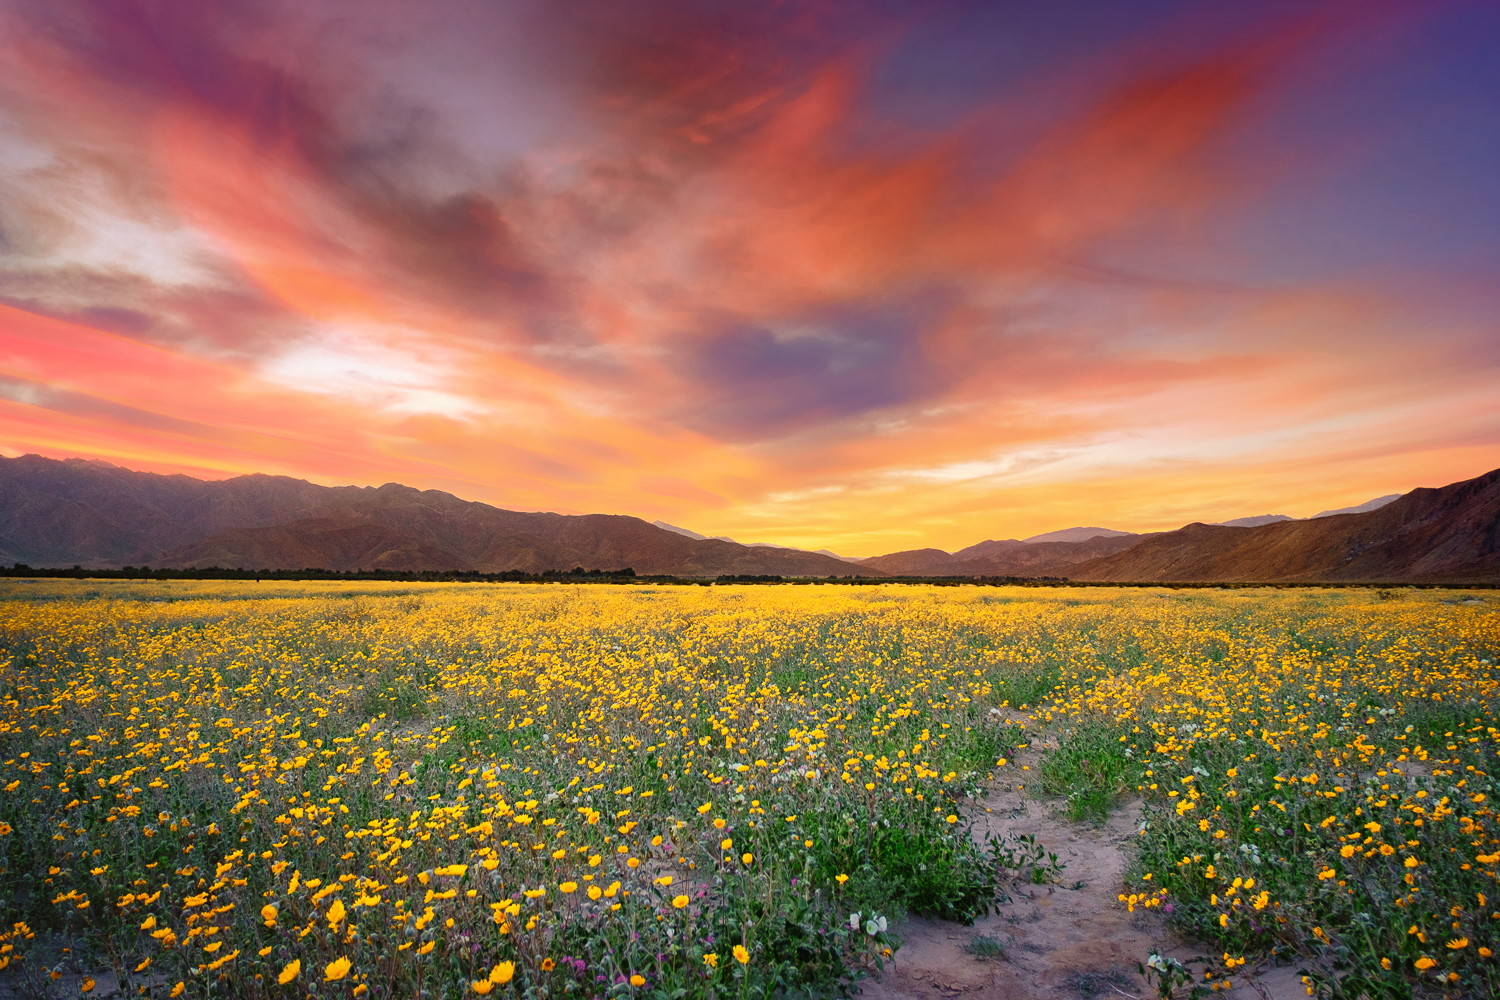 A field of desert sunflowers in Henderson Canyon, north of Borrego Springs